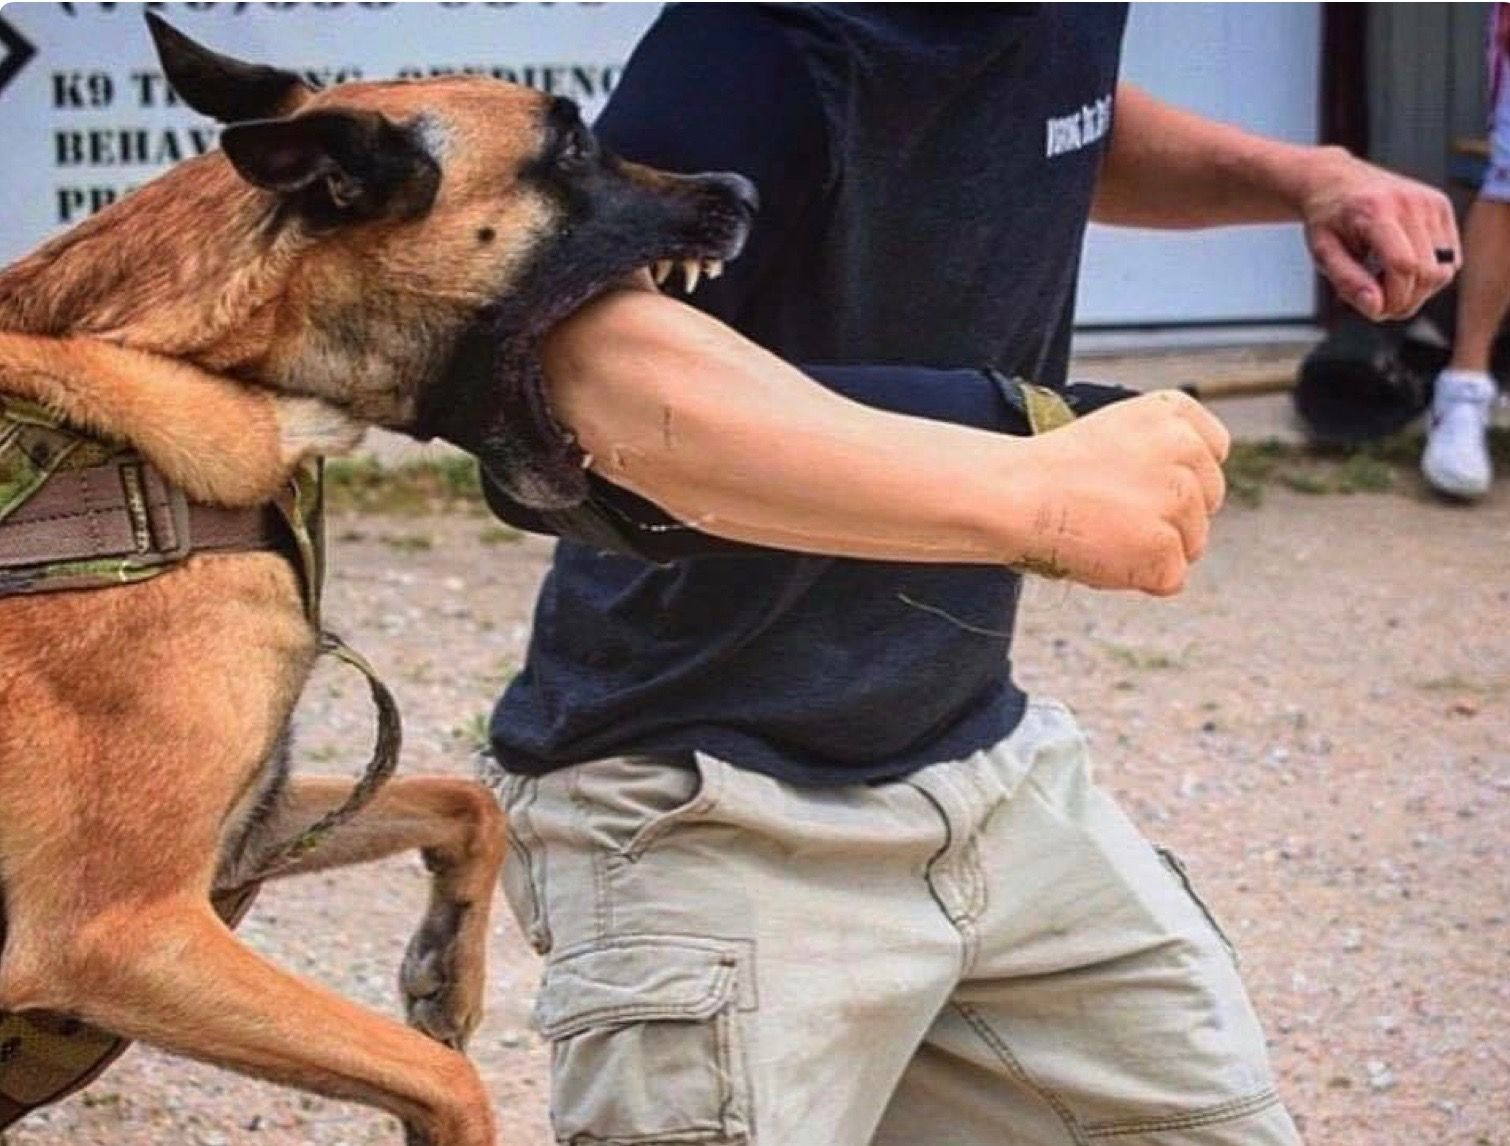 Pin By Zxe On K 9 S Malinois Dog Military Dogs Military Working Dogs